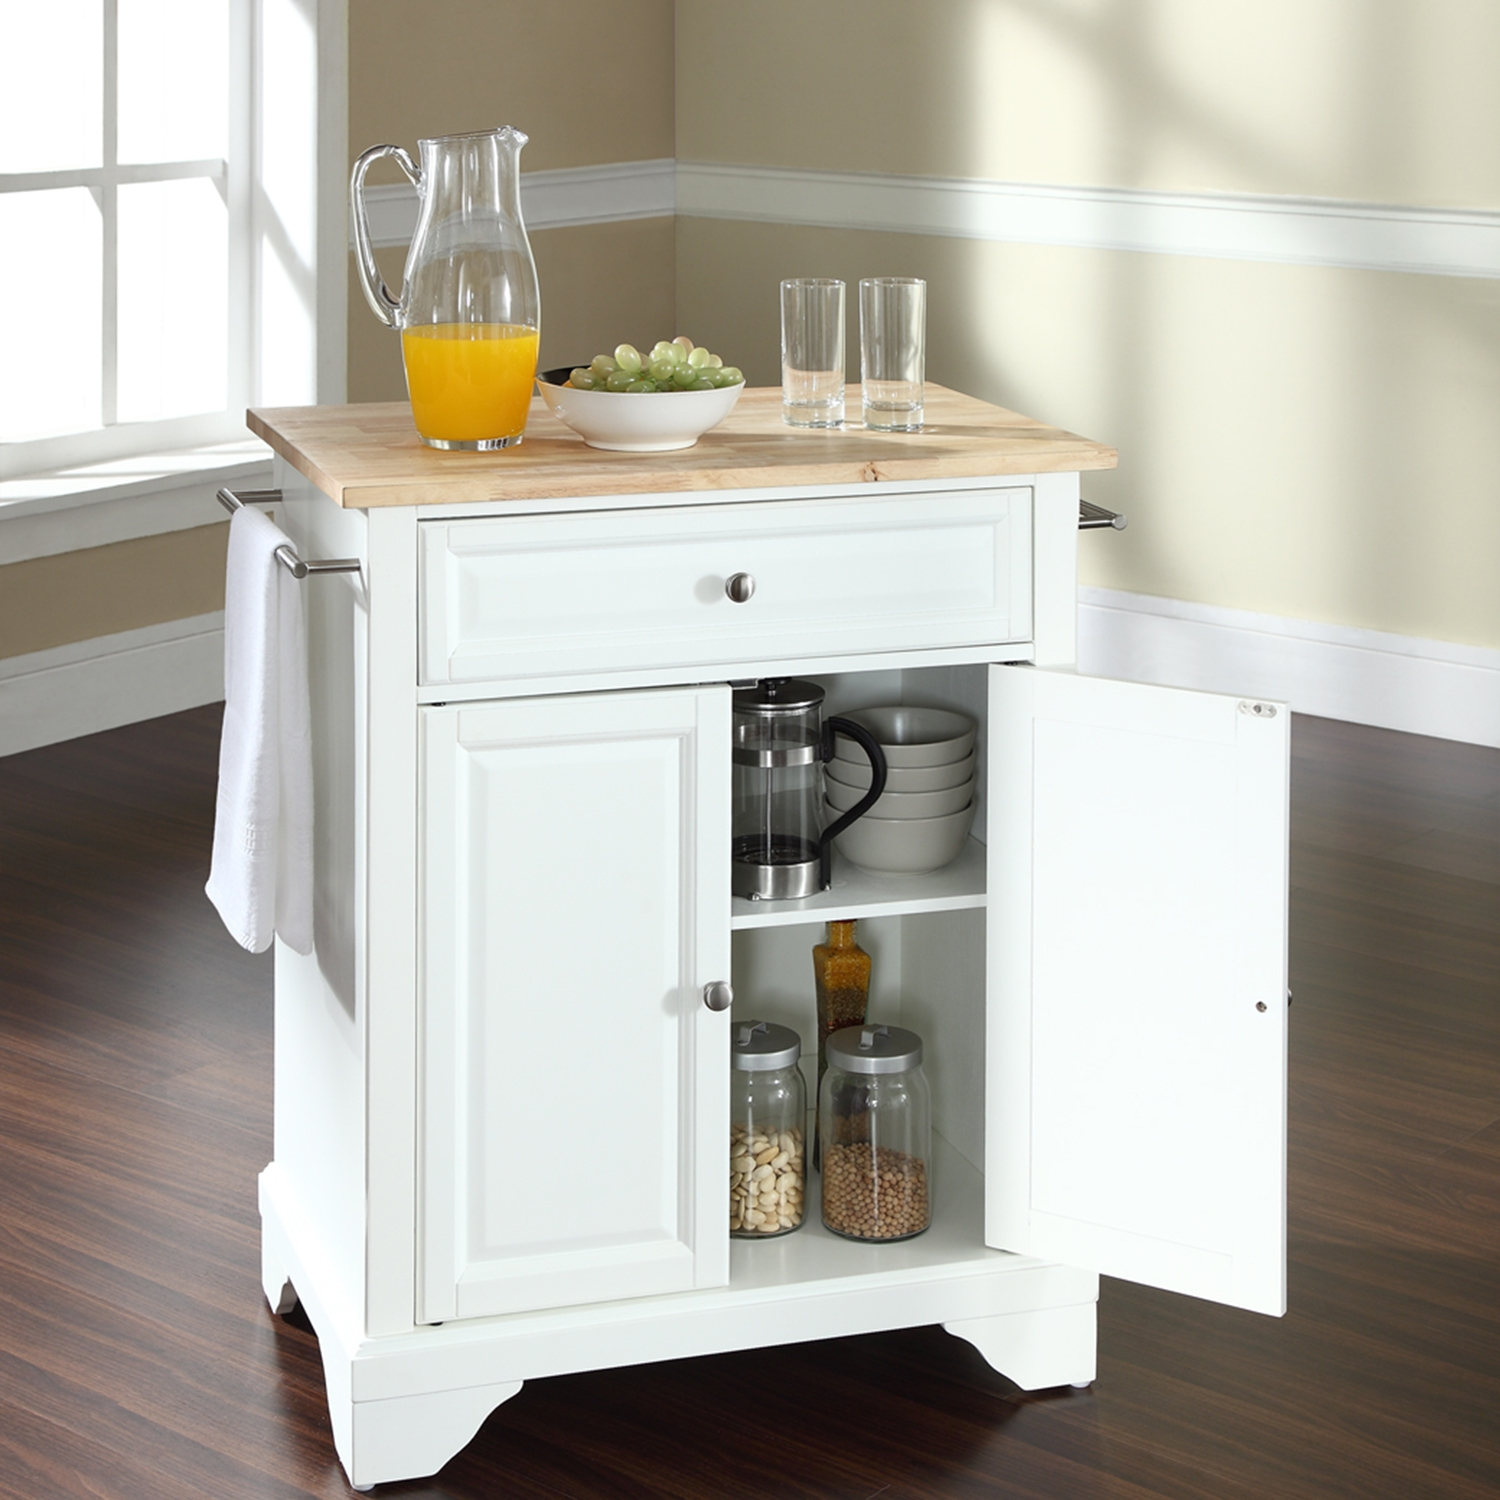 LaFayette Kitchen Island - Natural Wood Top, Portable, White - CROS-KF30021BWH